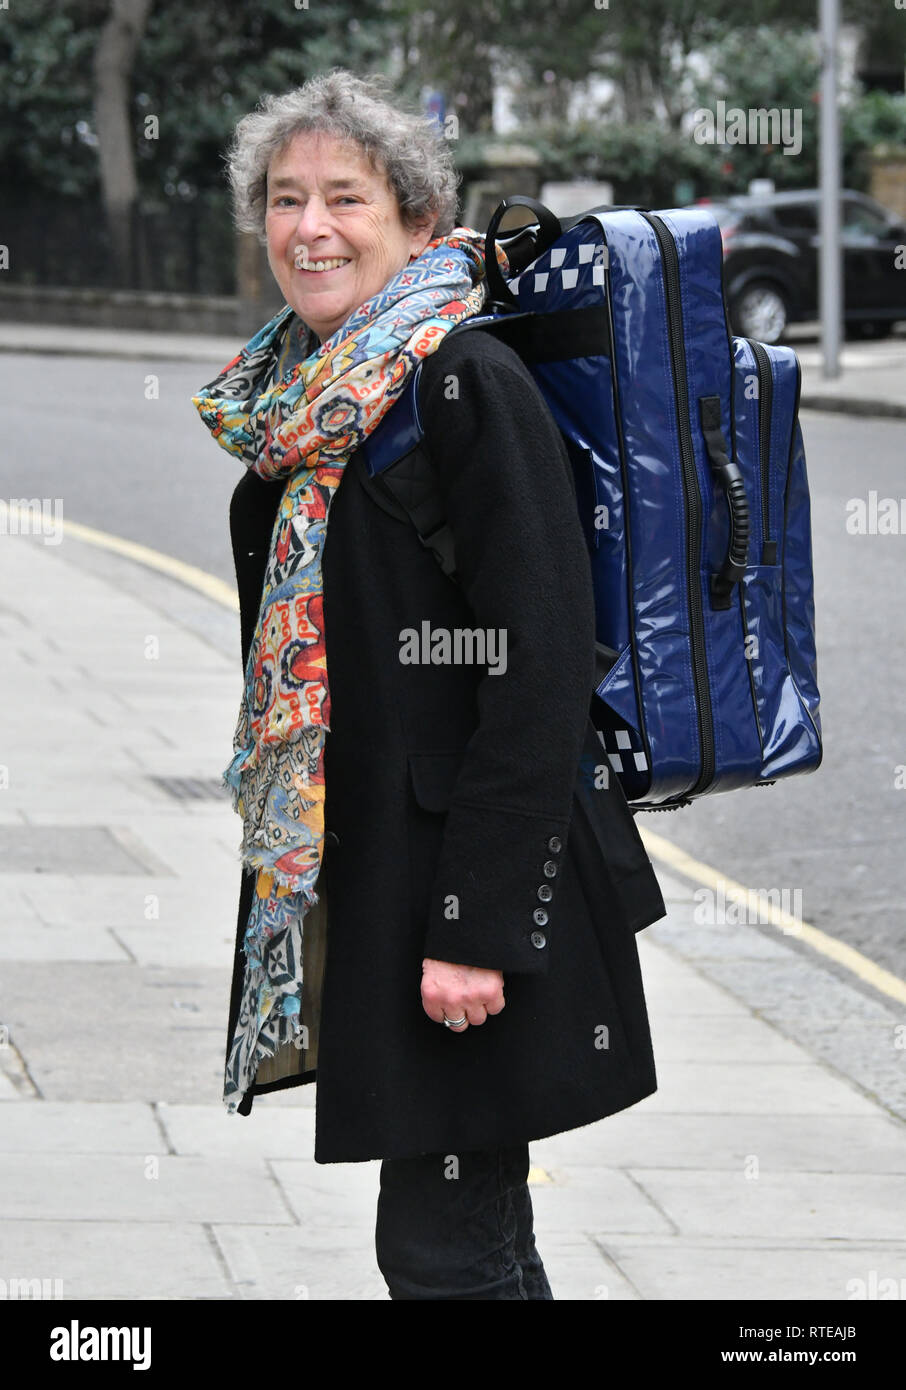 London, UK. 01st March, 2019. Linda Bassett (Nurse Phyllis Crane in the BBC's 'Call the Midwife') at launch of new UK standardised home delivery bag for midwives, on behalf of the maternity charity Baby Lifeline, at Sub-Zero & Wolf Showroom.  Baby Lifeline developed the new bag, along with its contents and processes, in conjunction with a leading expert clinical group. Six NHS Trusts will be trialling the bag and contents over the next few months. Credit: Nils Jorgensen/Alamy Live News - Stock Image